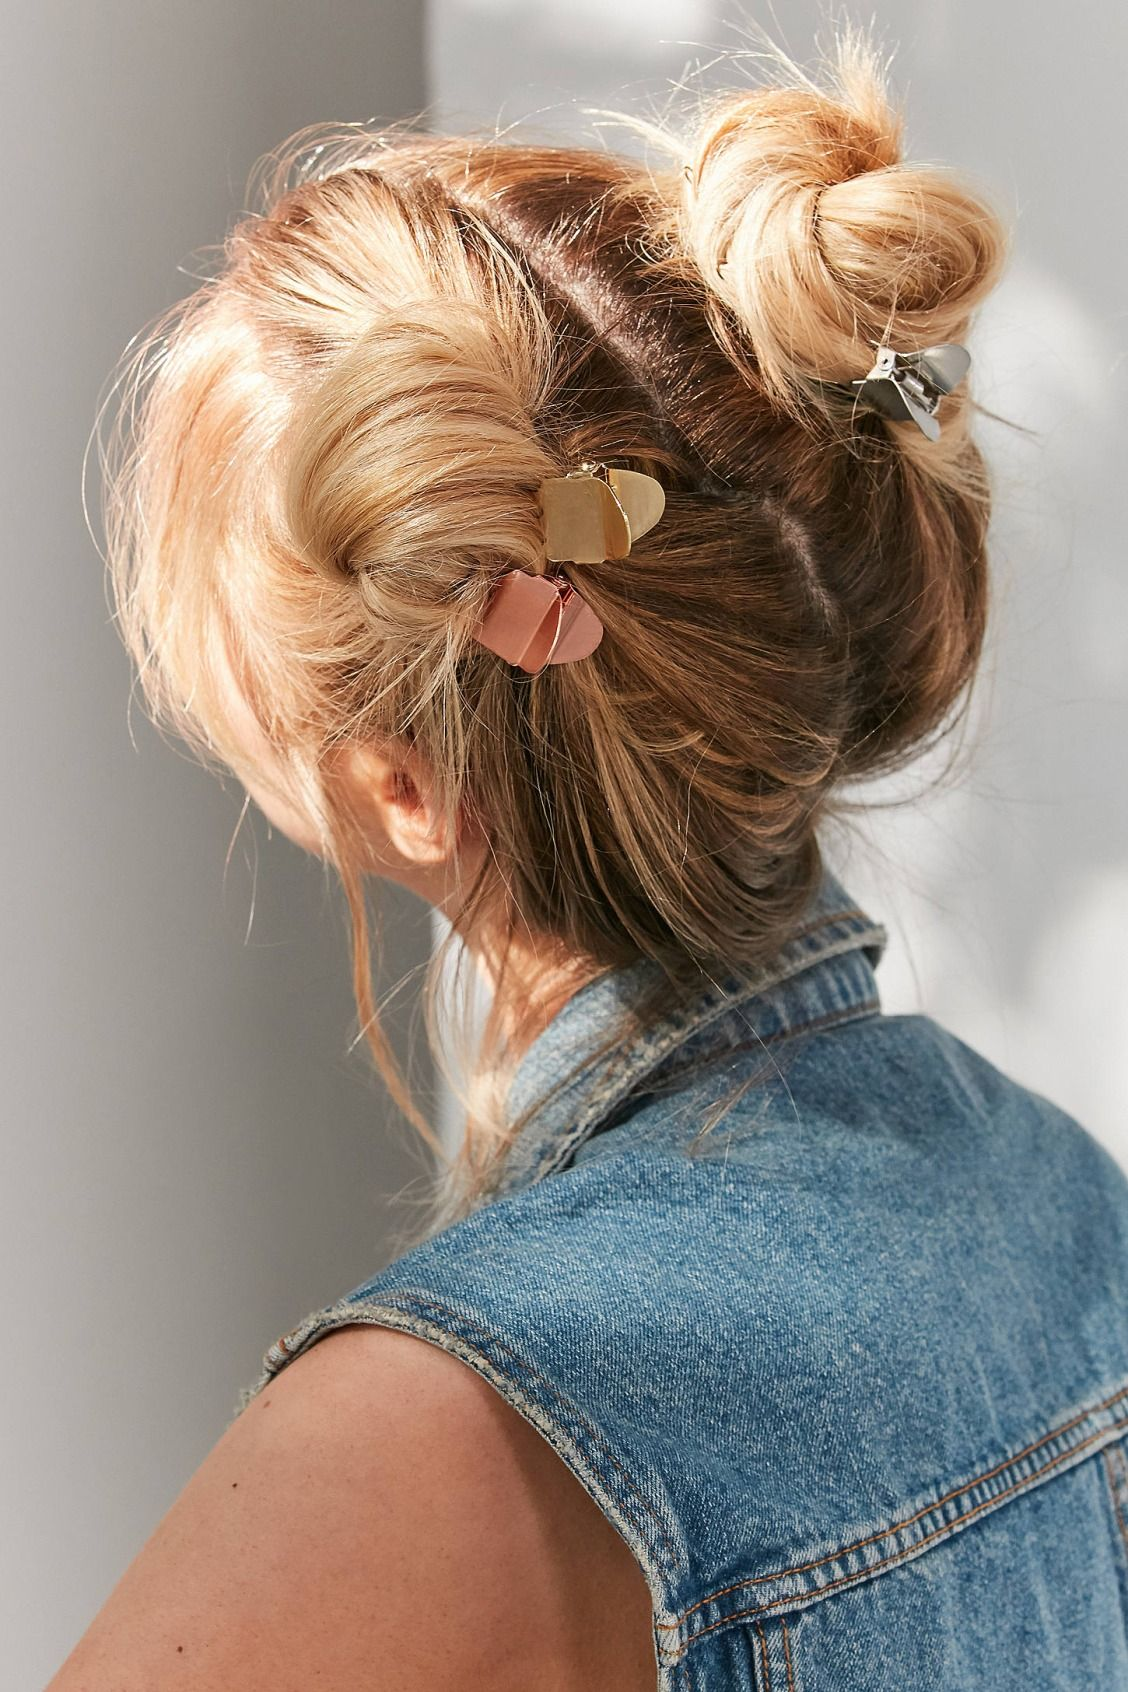 19+ Claw clip hairstyles for long hair trends